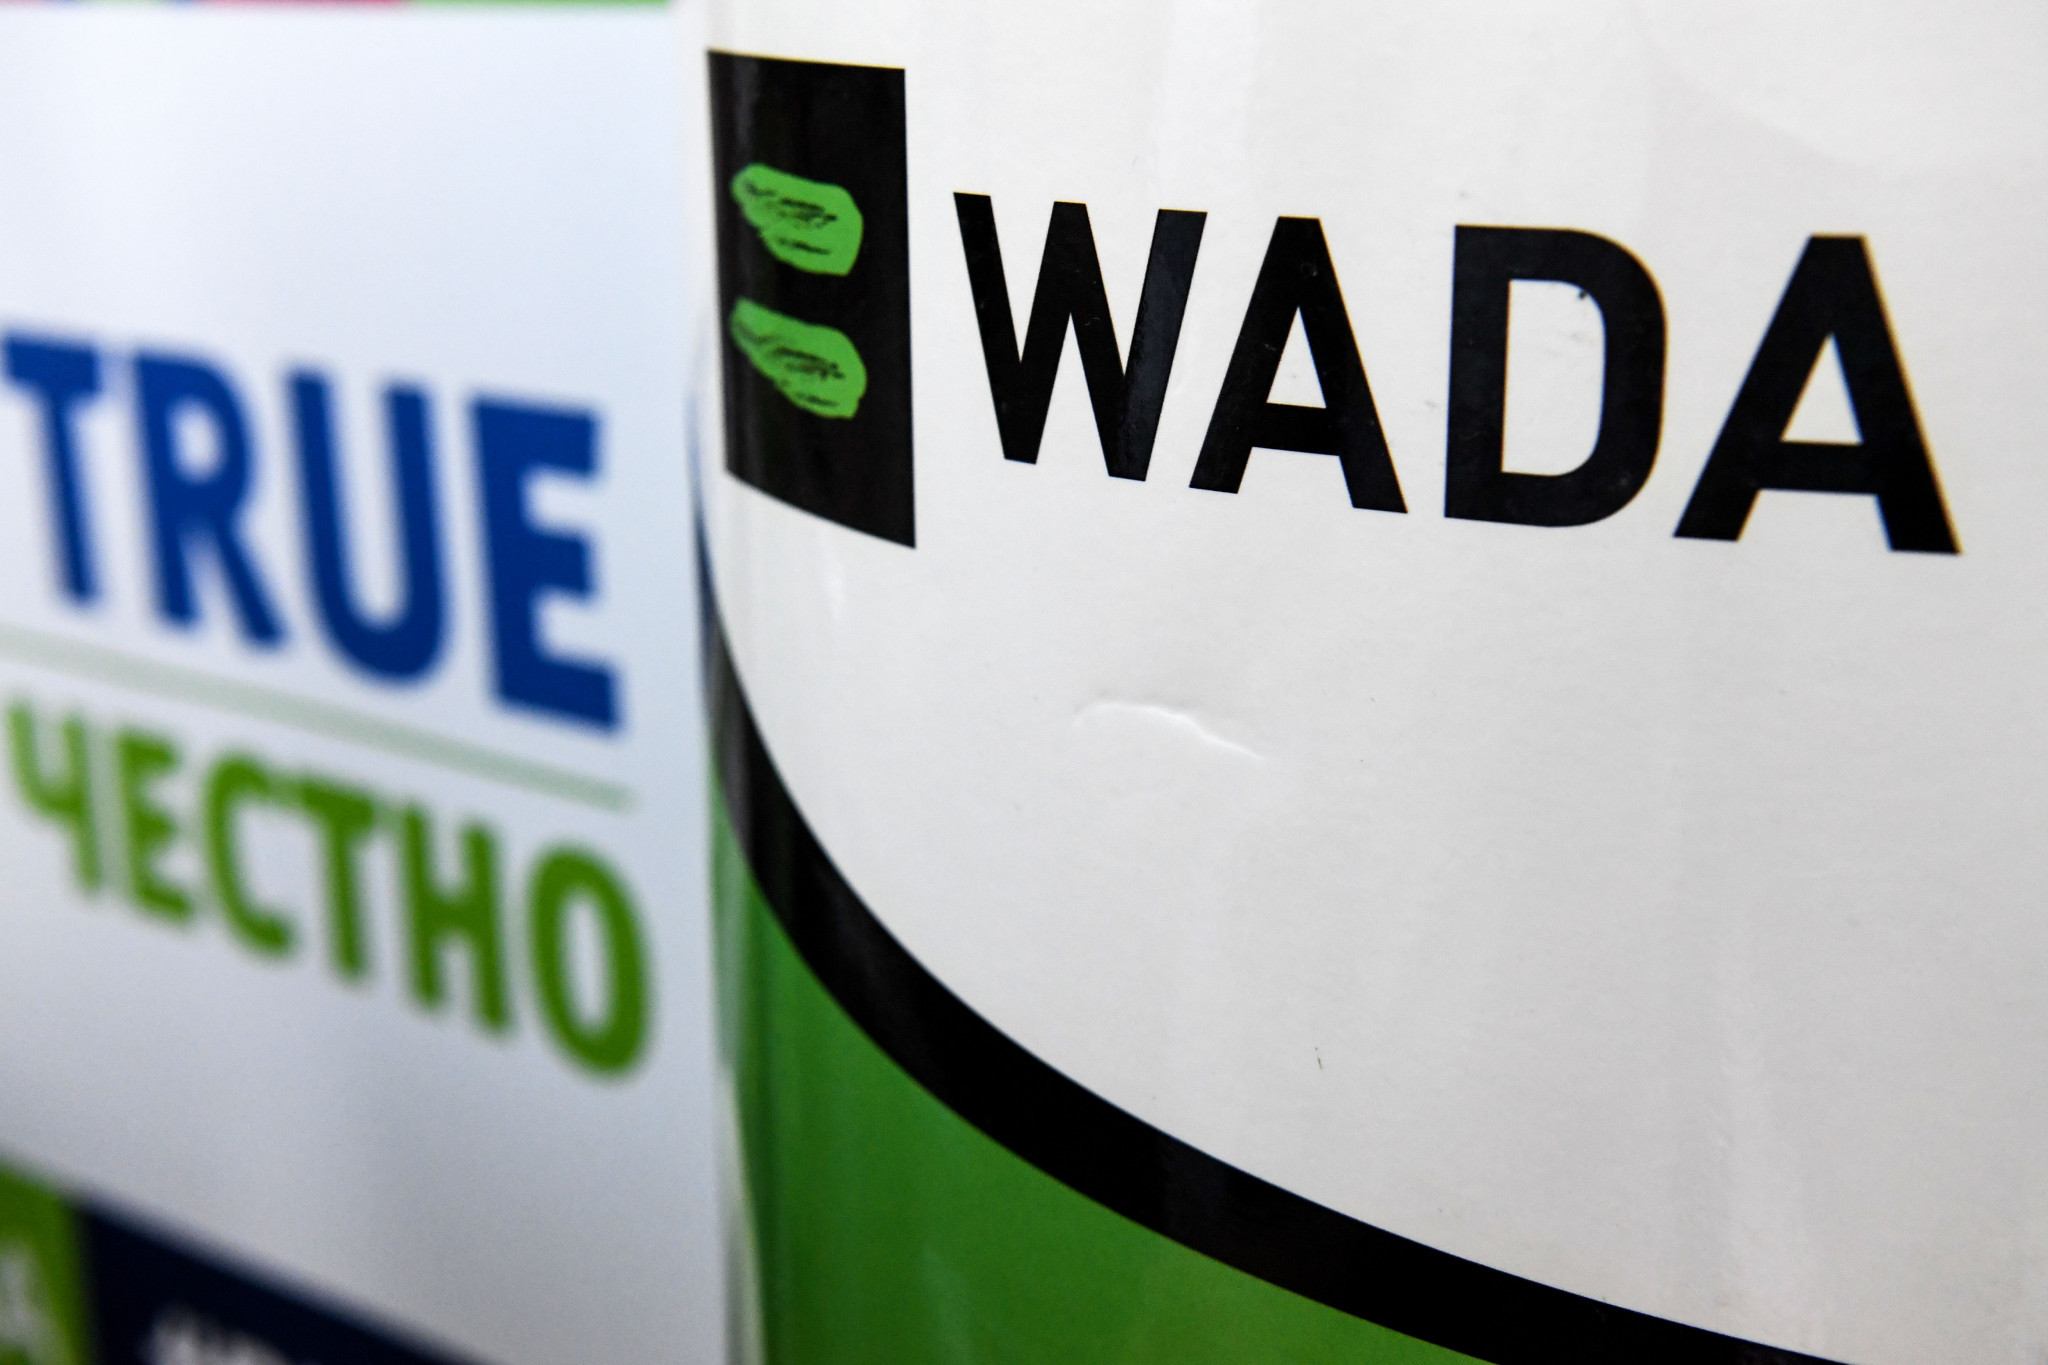 WADA publishes final version of 2021 World Anti-Doping Code